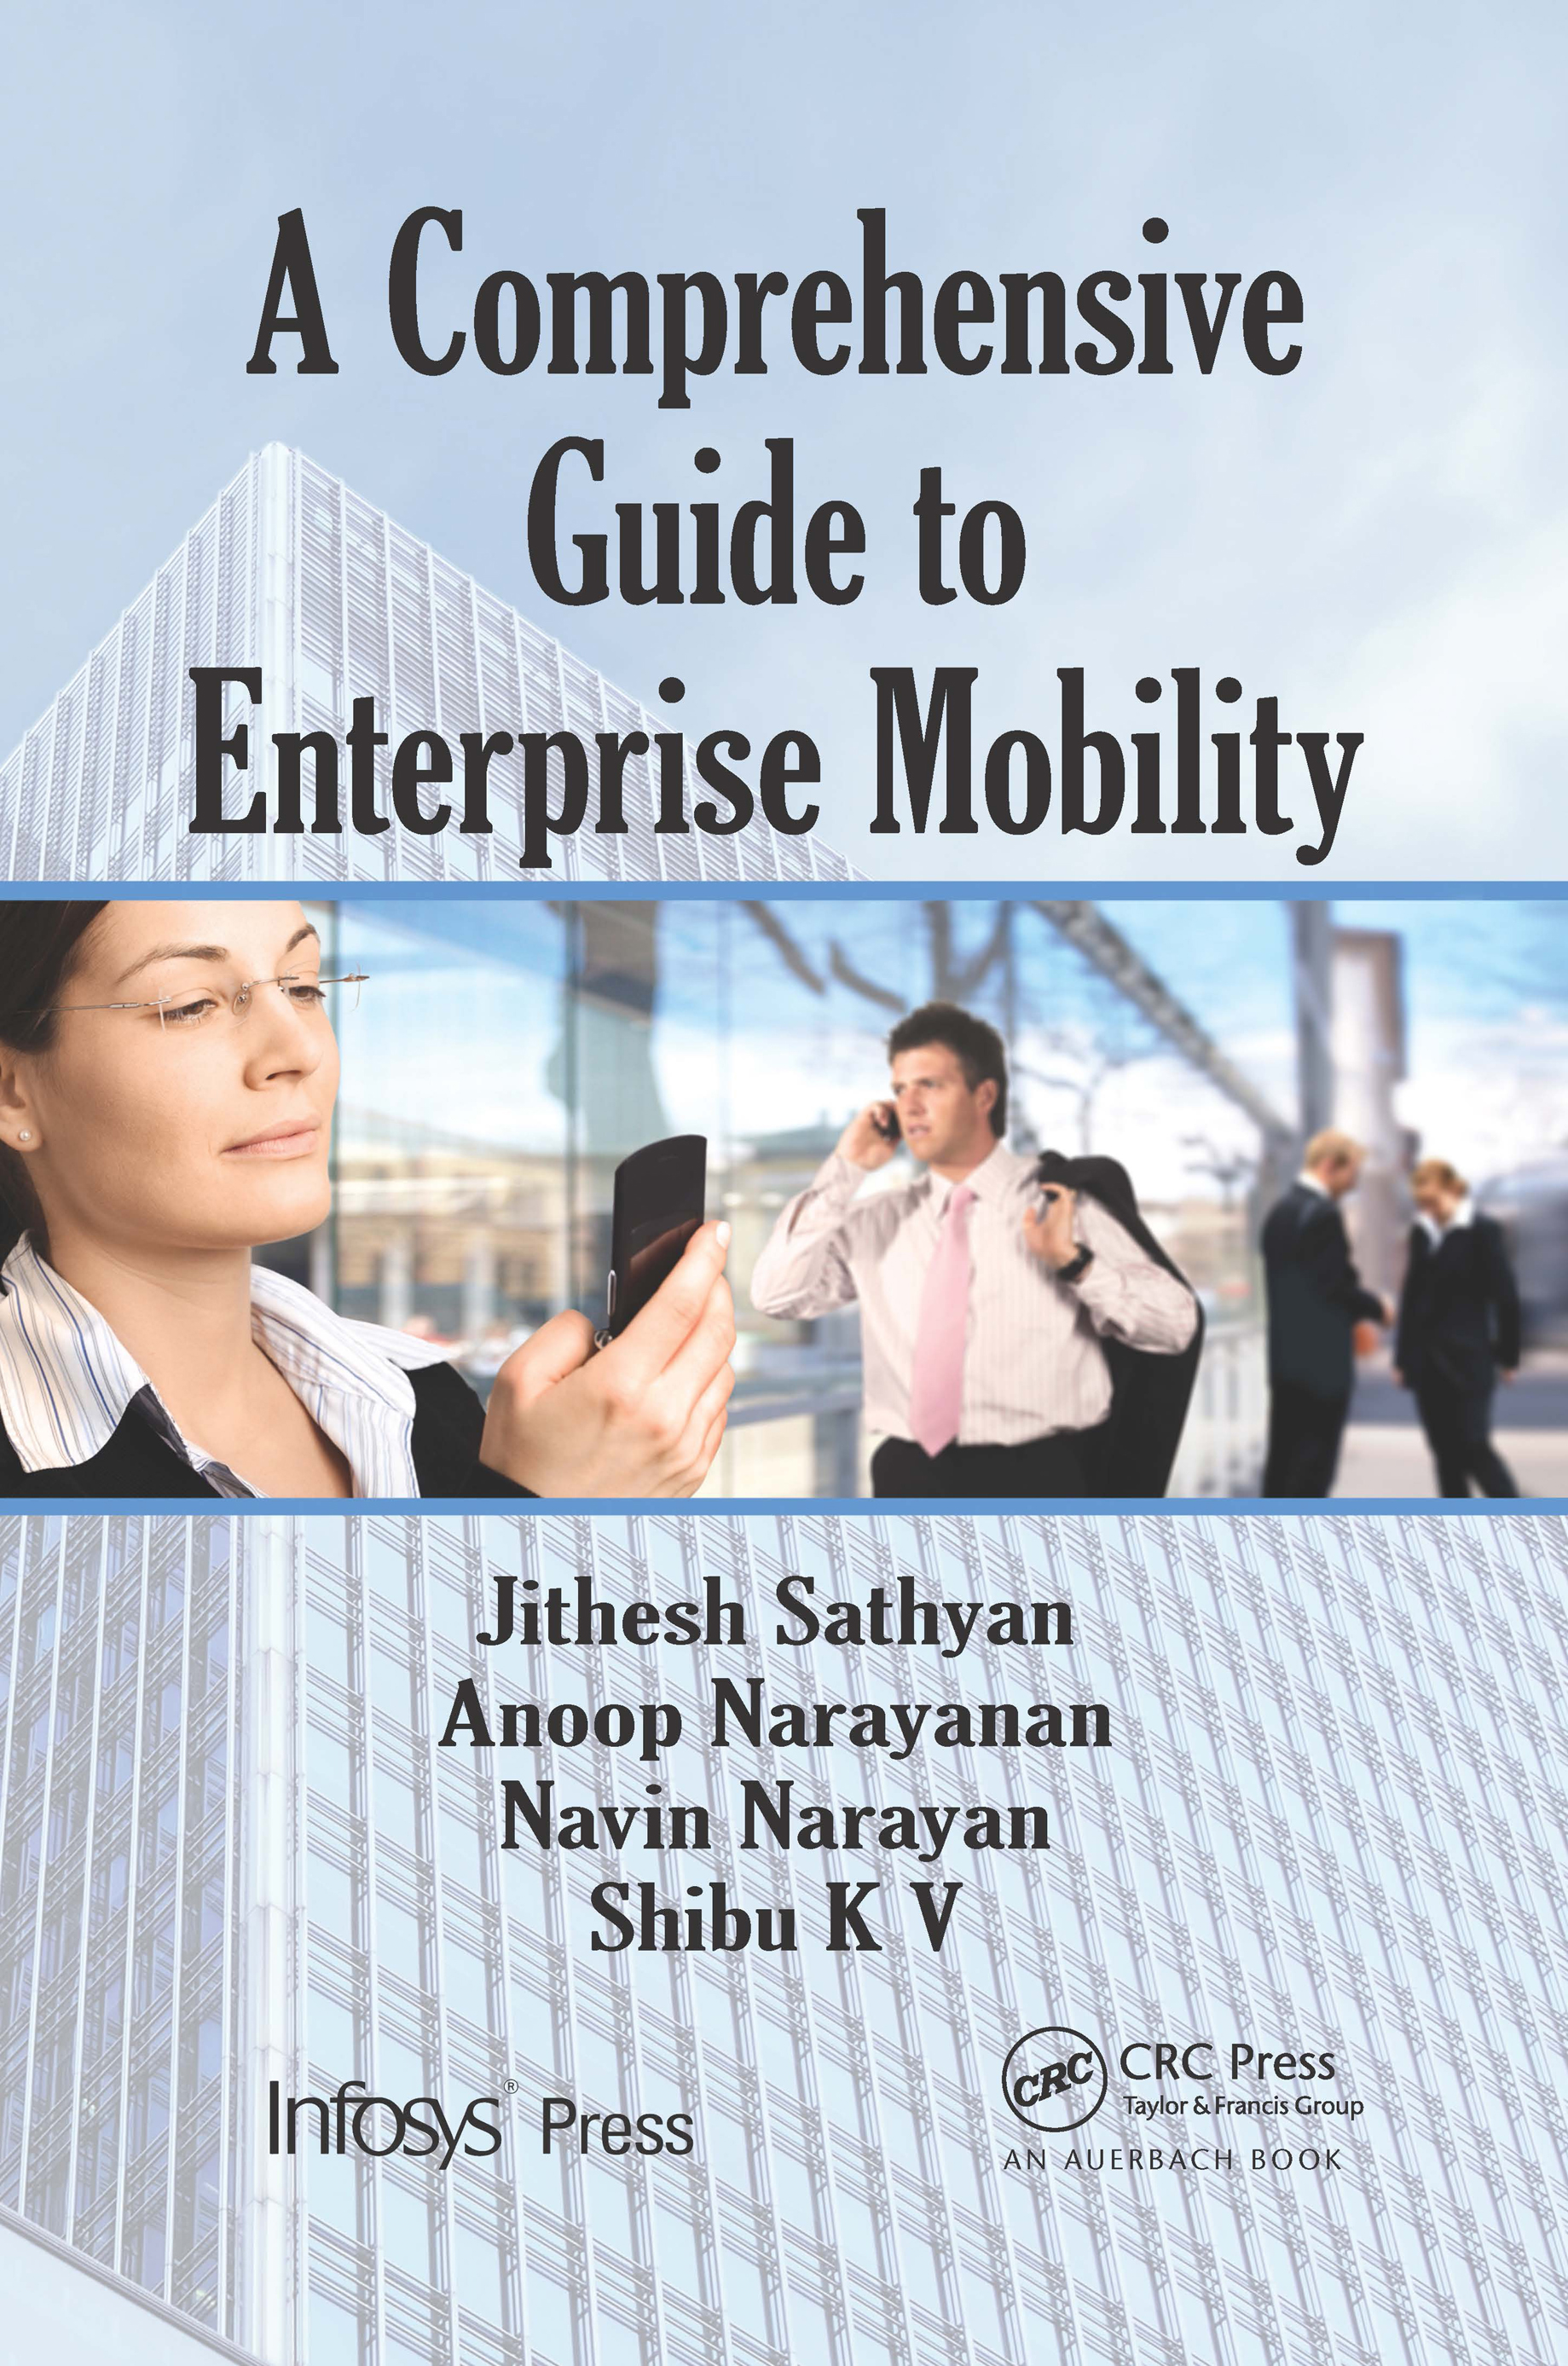 Download Ebook A Comprehensive Guide to Enterprise Mobility by Jithesh Sathyan Pdf